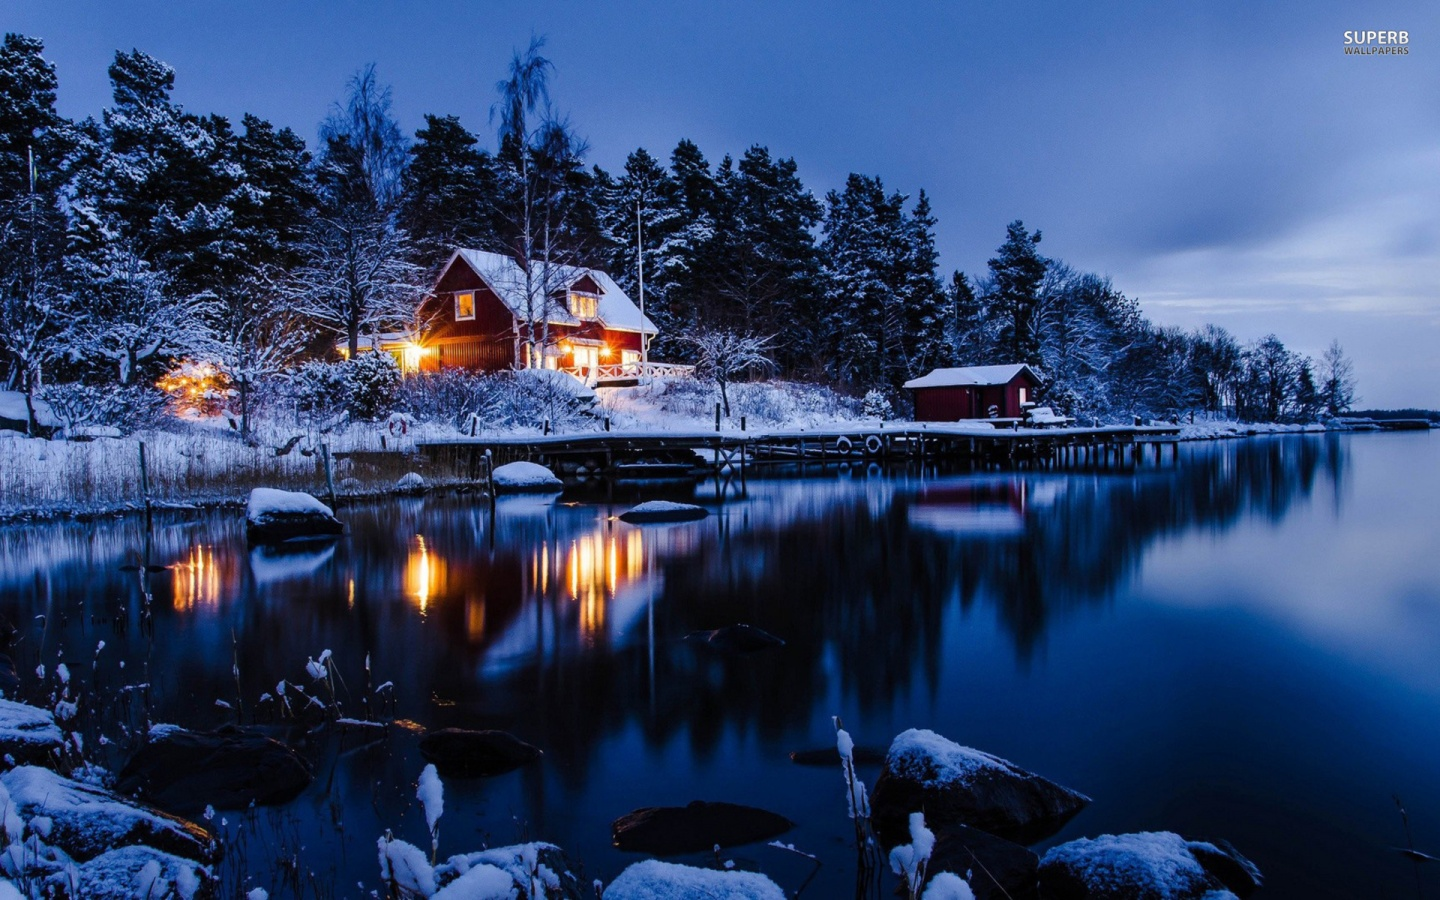 1440x900 Lakeside Winter Cabin Desktop Pc And Mac Wallpaper